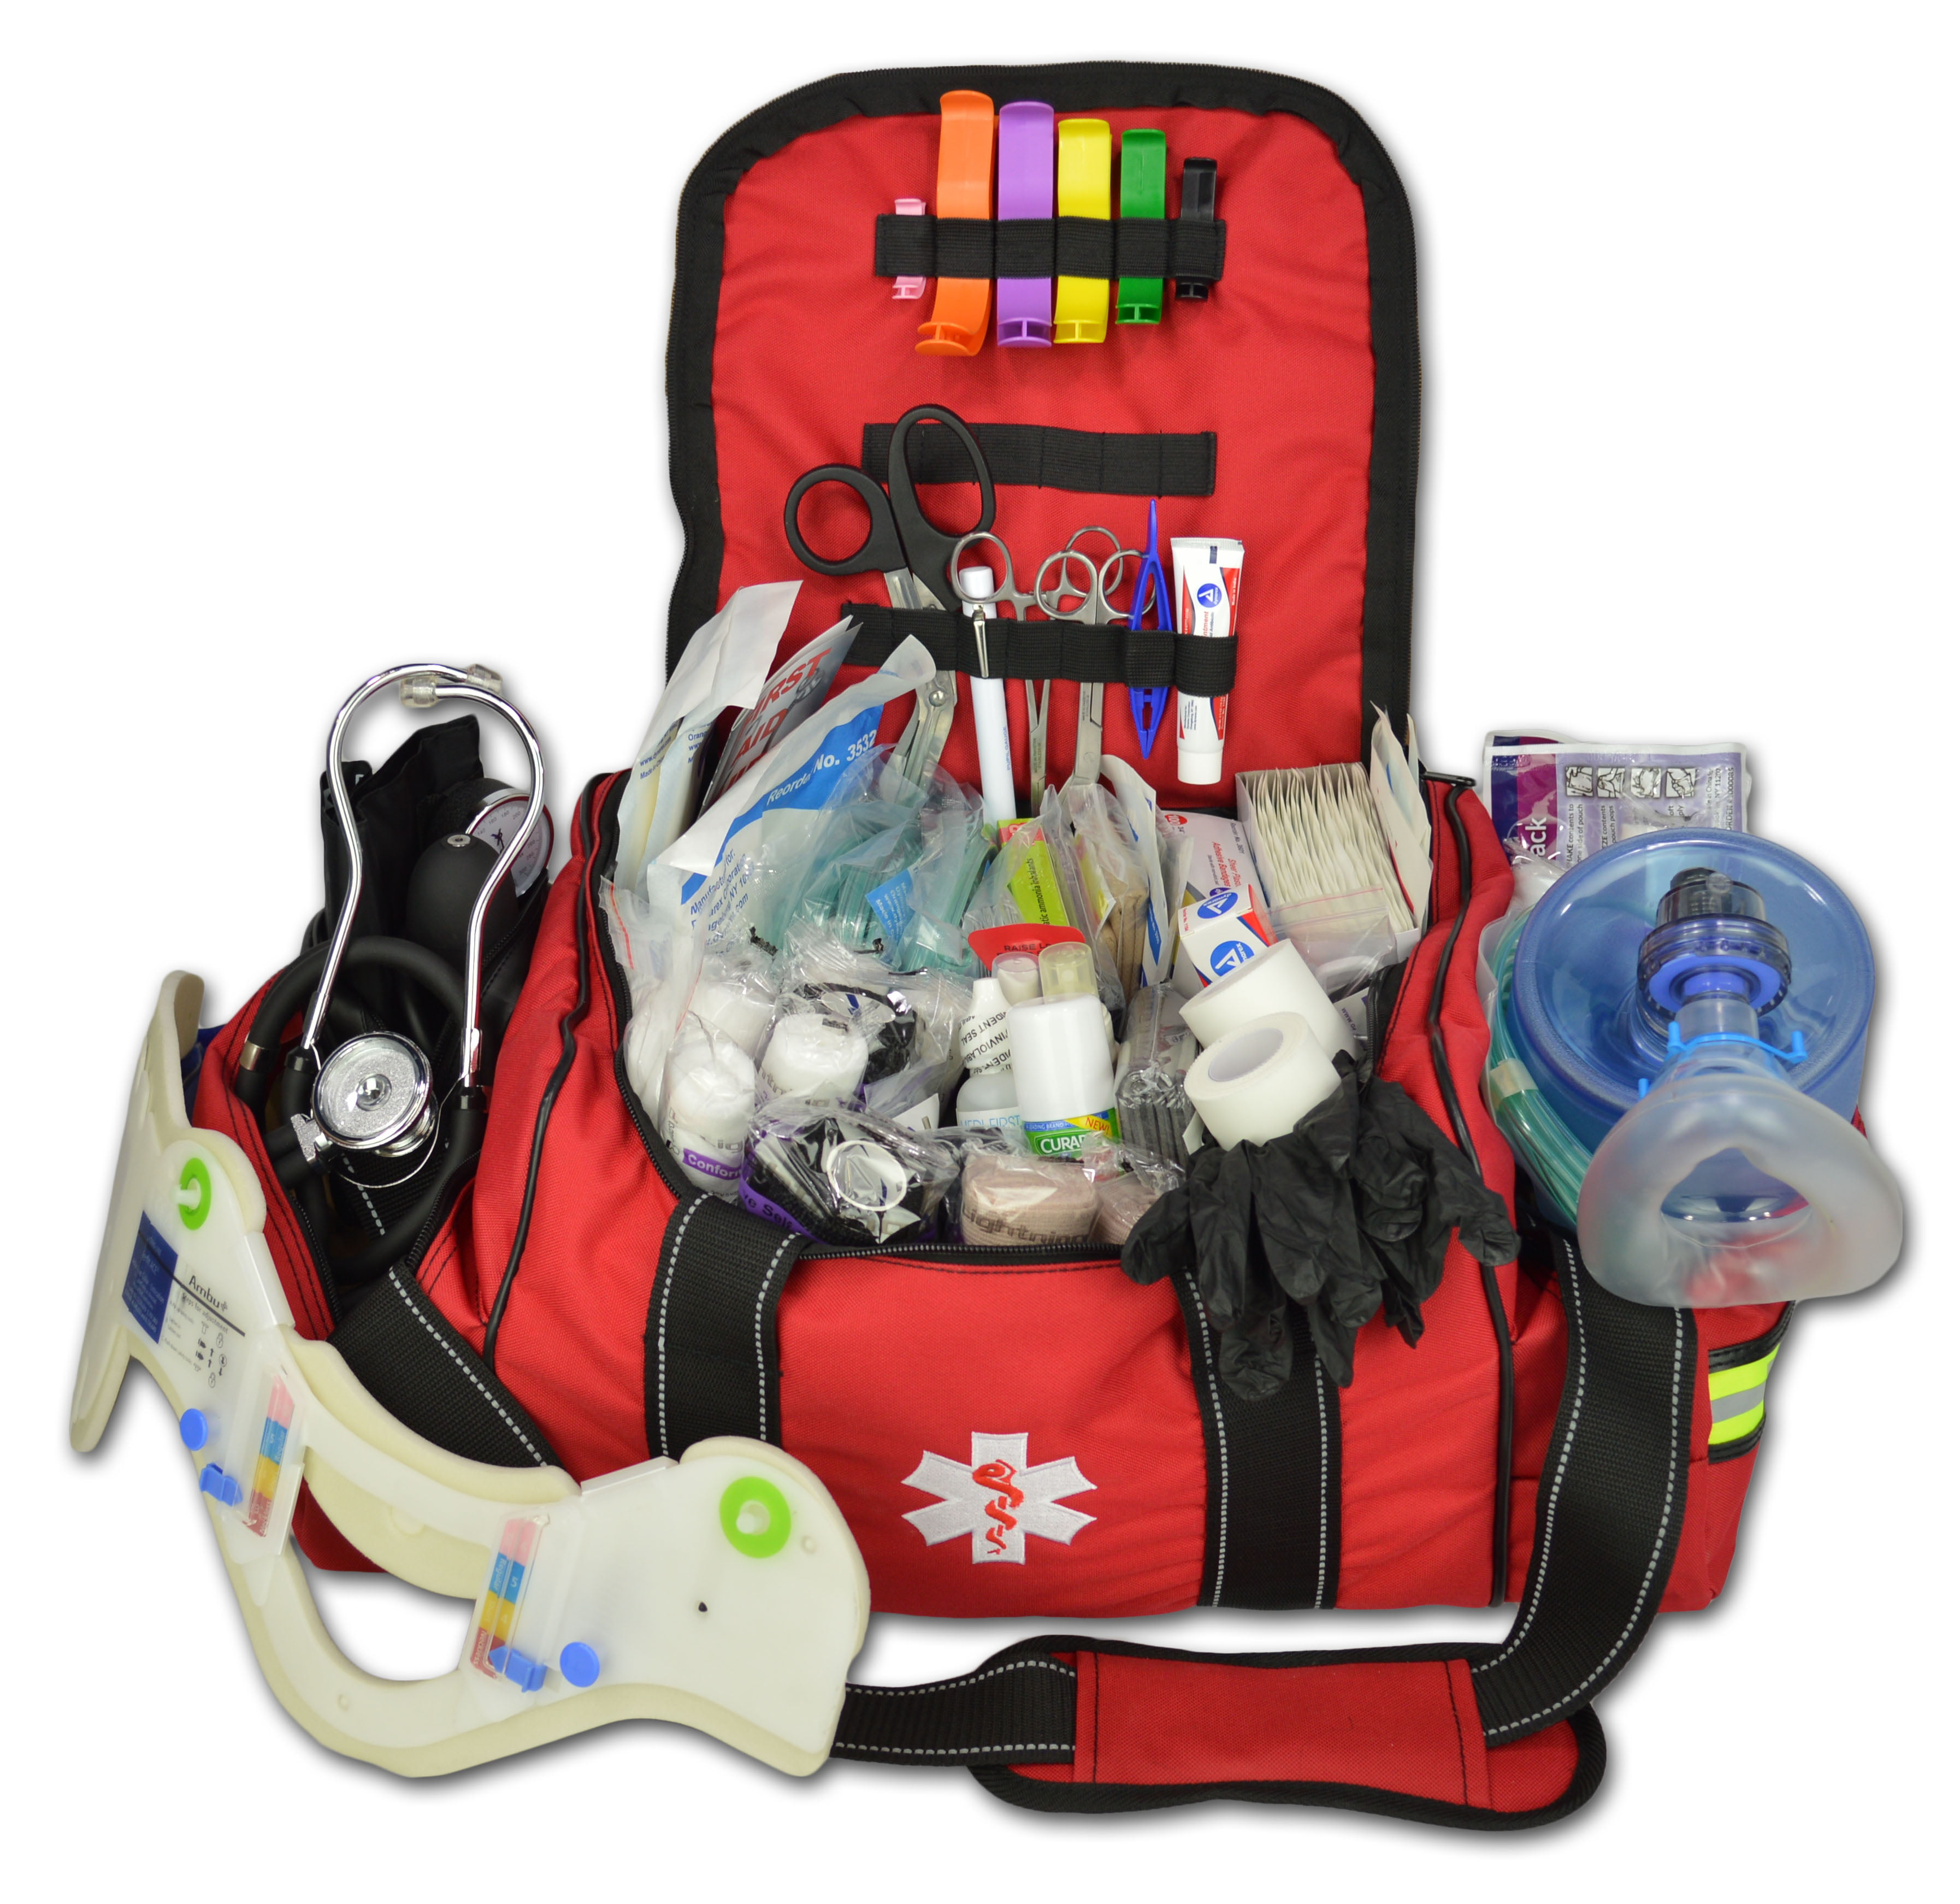 d47886955 Lightning X Deluxe Stocked Large EMT First Aid Trauma Bag w/ Emergency Medical  Supplies Fill Kit C - Walmart.com